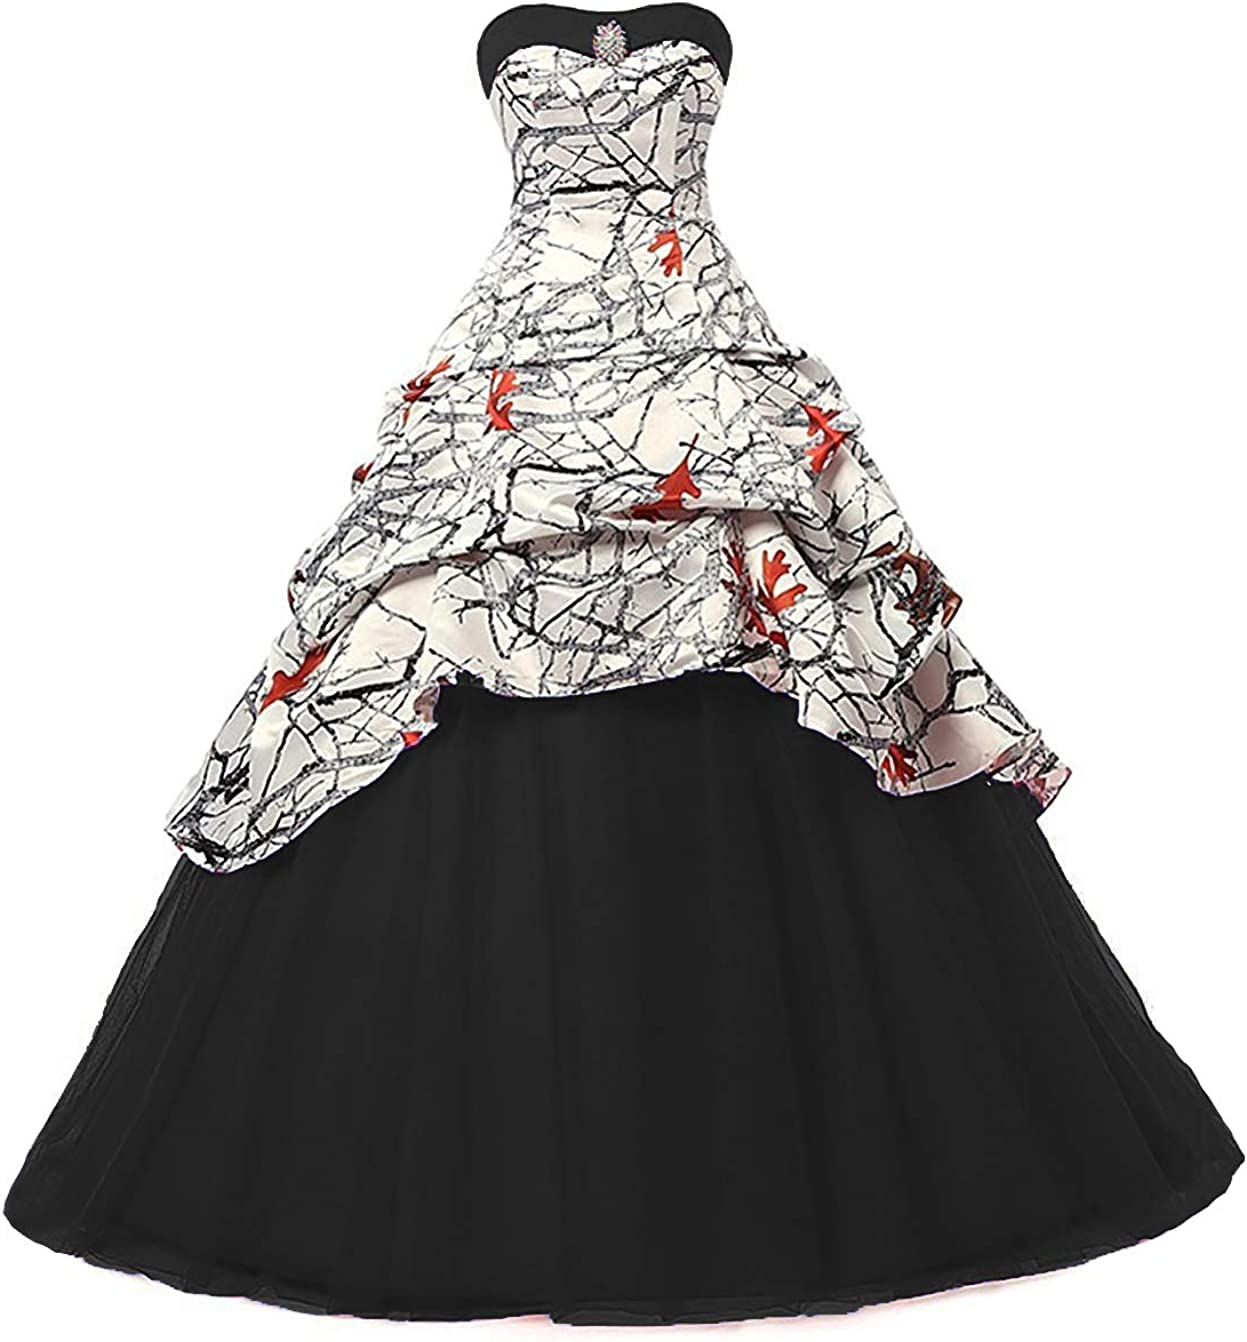 Ilovewedding White Camo Wedding Dress Tulle Ball Gown Prom Quinceanera Dresses At Amazon Women S Clothing Store